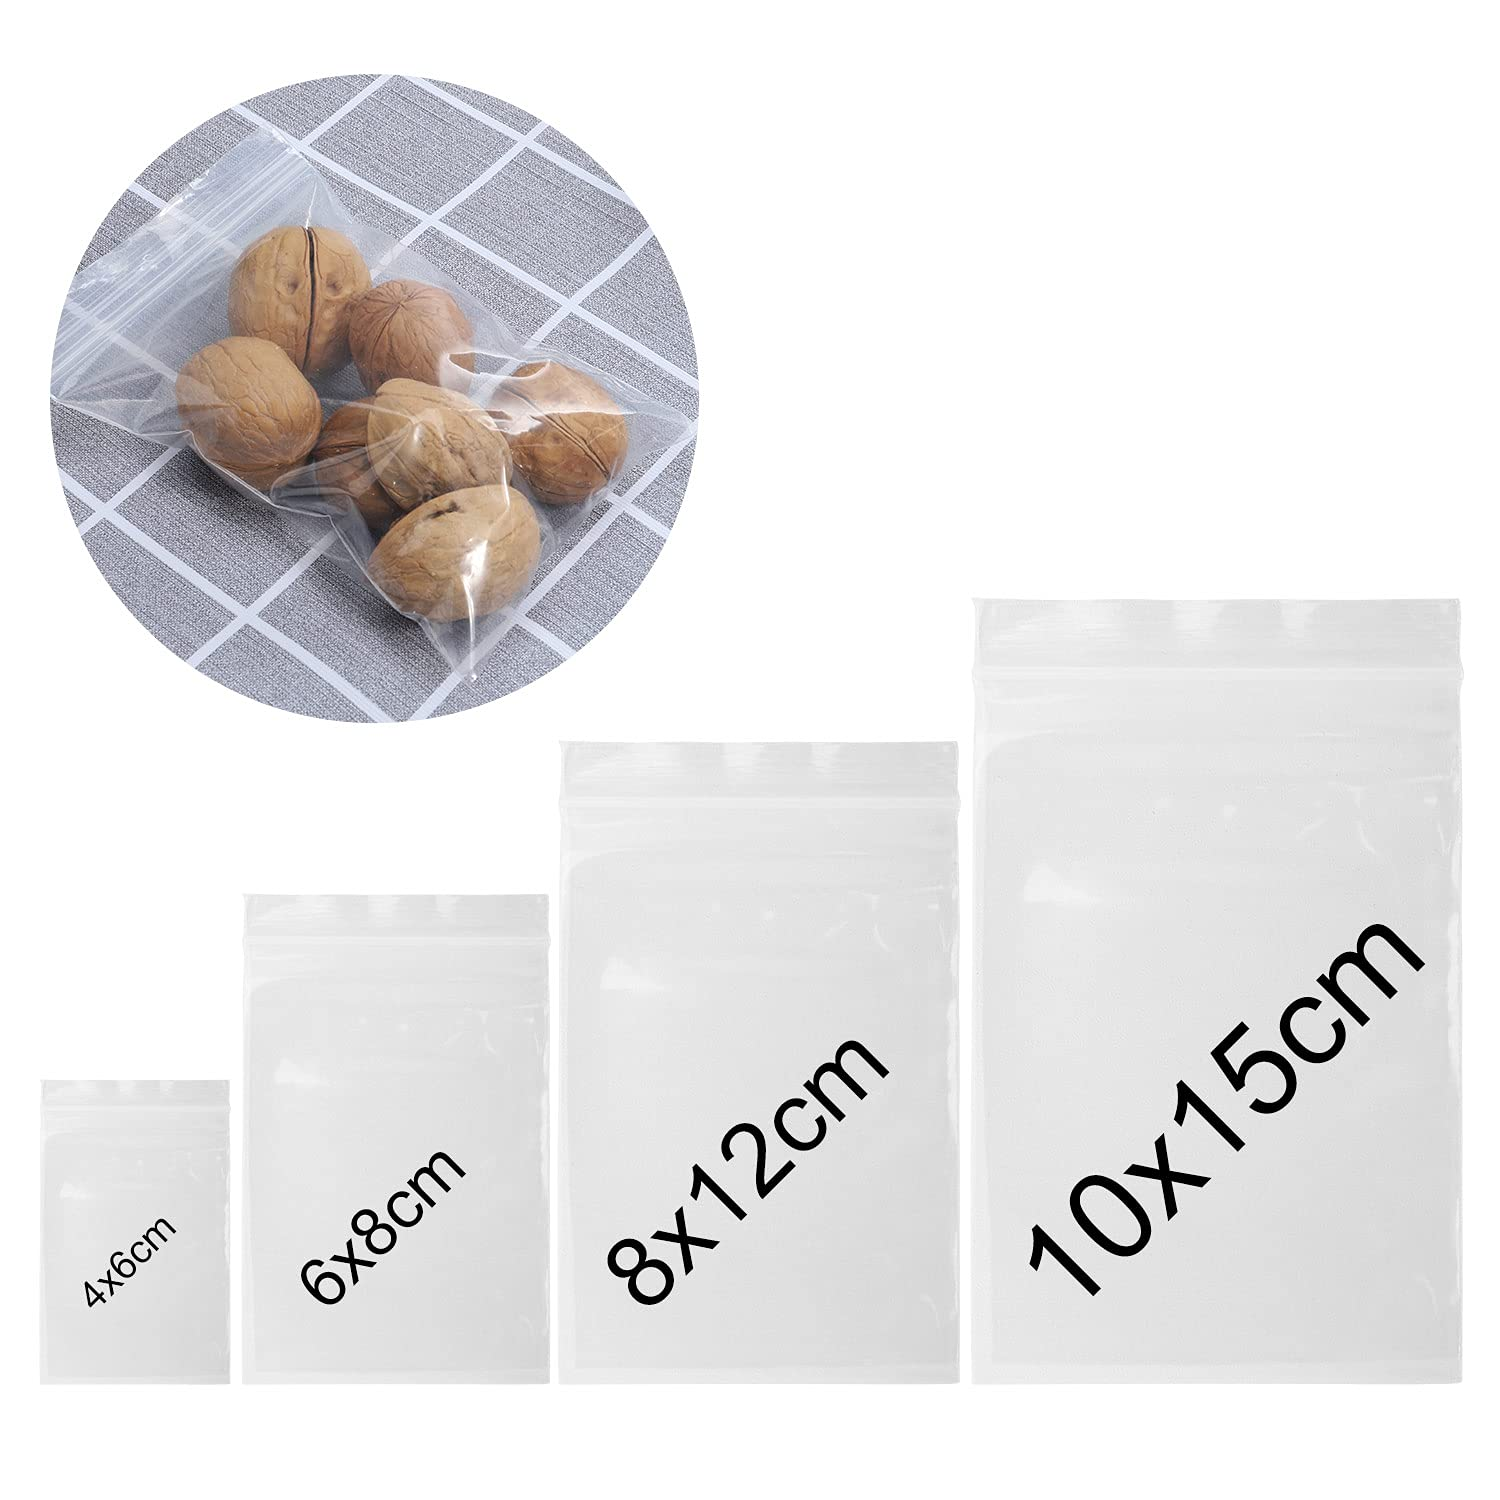 ANWING 200 Pack 2 Mil Thick Poly Ziplock Bags Clear Reclosable Plastic Poly Bags, Food Grade Safe Self Sealing OPP Poly Bags Zipper Baggies for Jewelry, Candies, Coin, Pill Etc